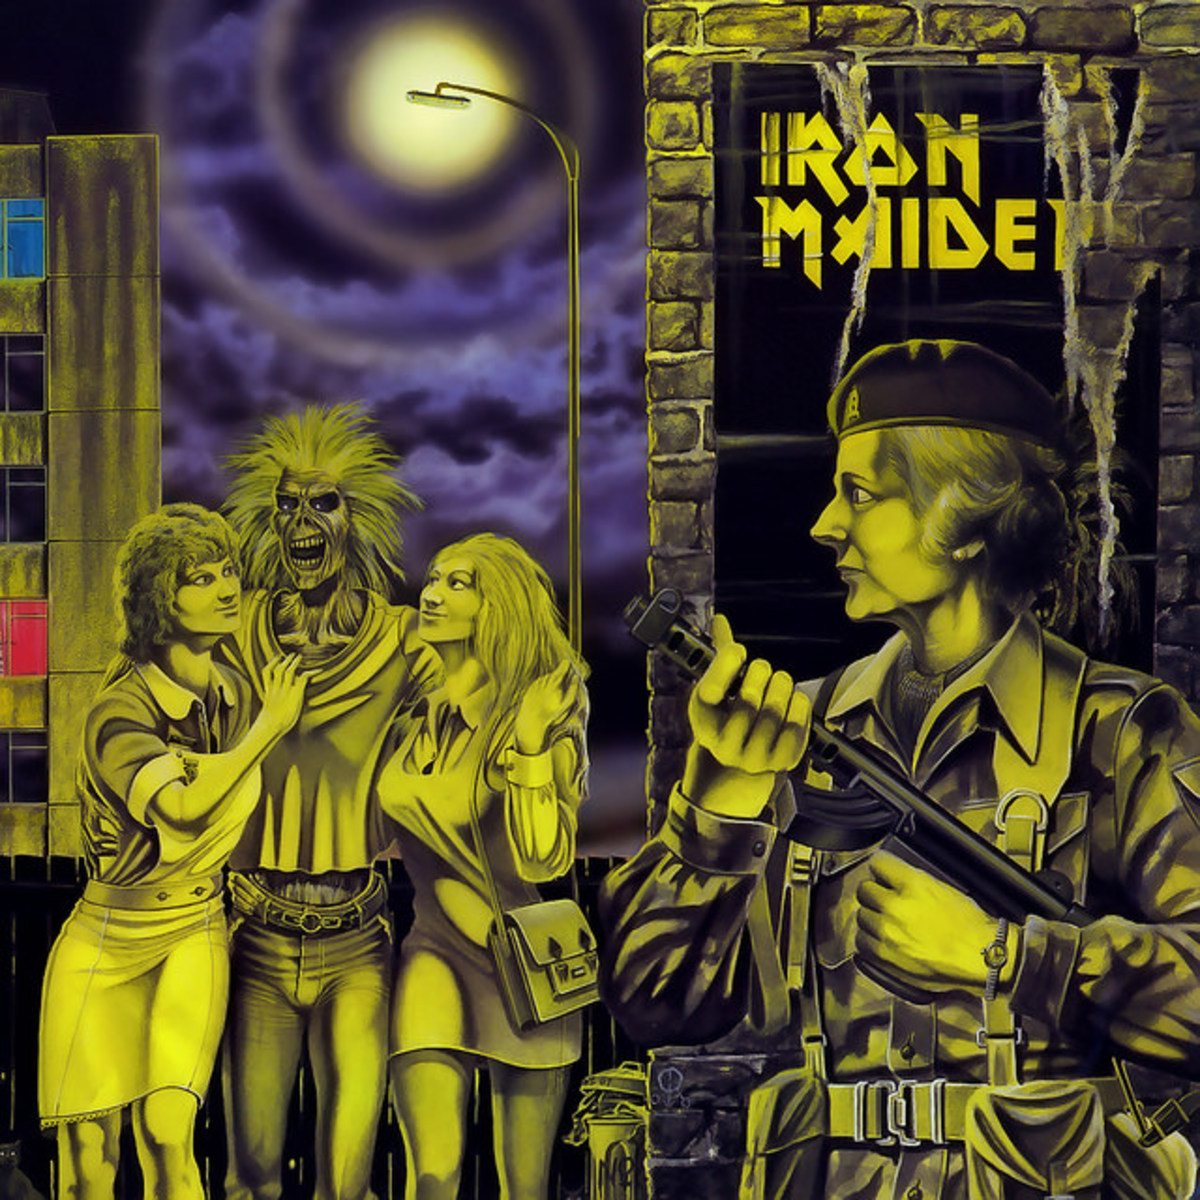 "Iron Maiden ""Woman In Uniforms"" EMI 12EMI 5105 12"" Vinyl Record Single (1980) Picture Sleeve Art by Derek Riggs"